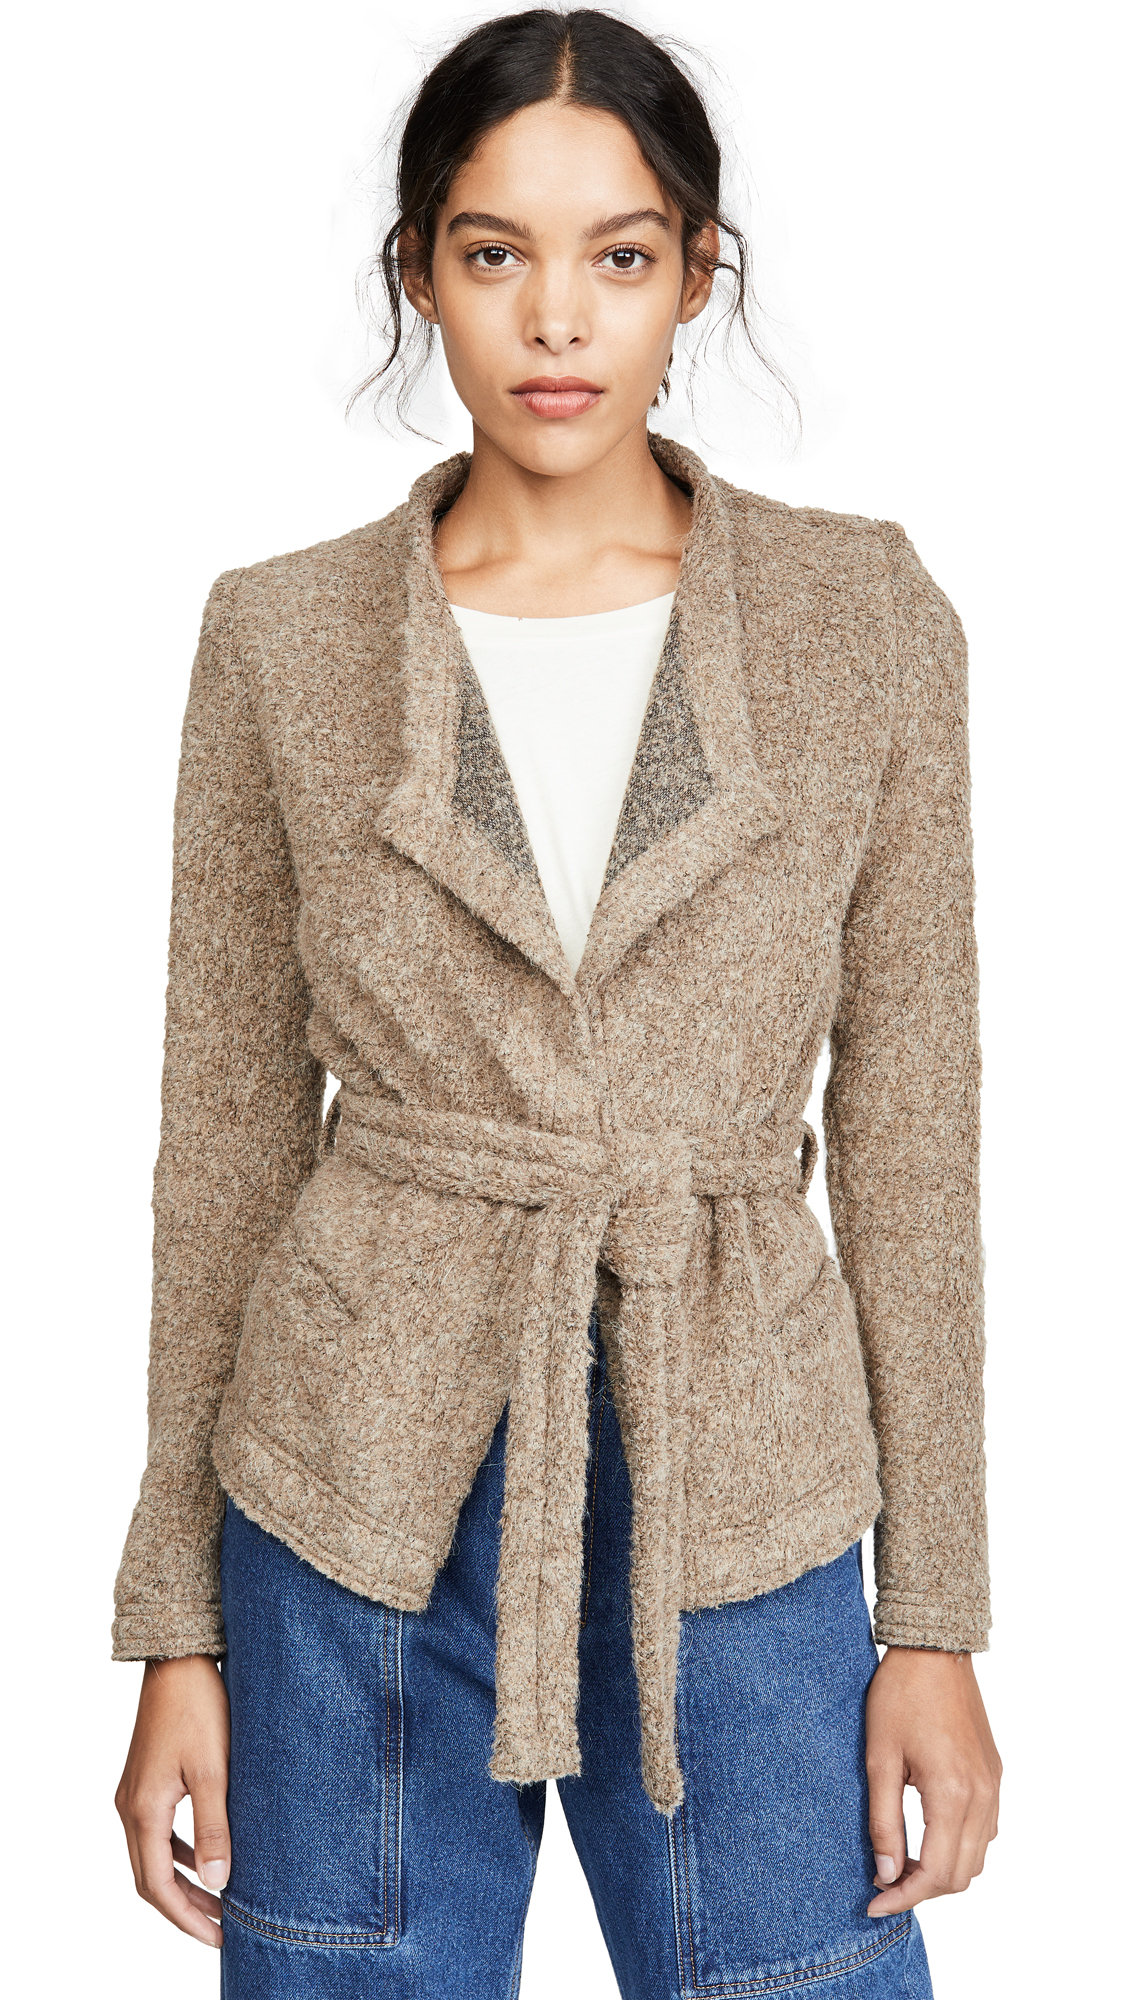 Buy IRO Iquitos Jacket online beautiful IRO Jackets, Coats, Coats